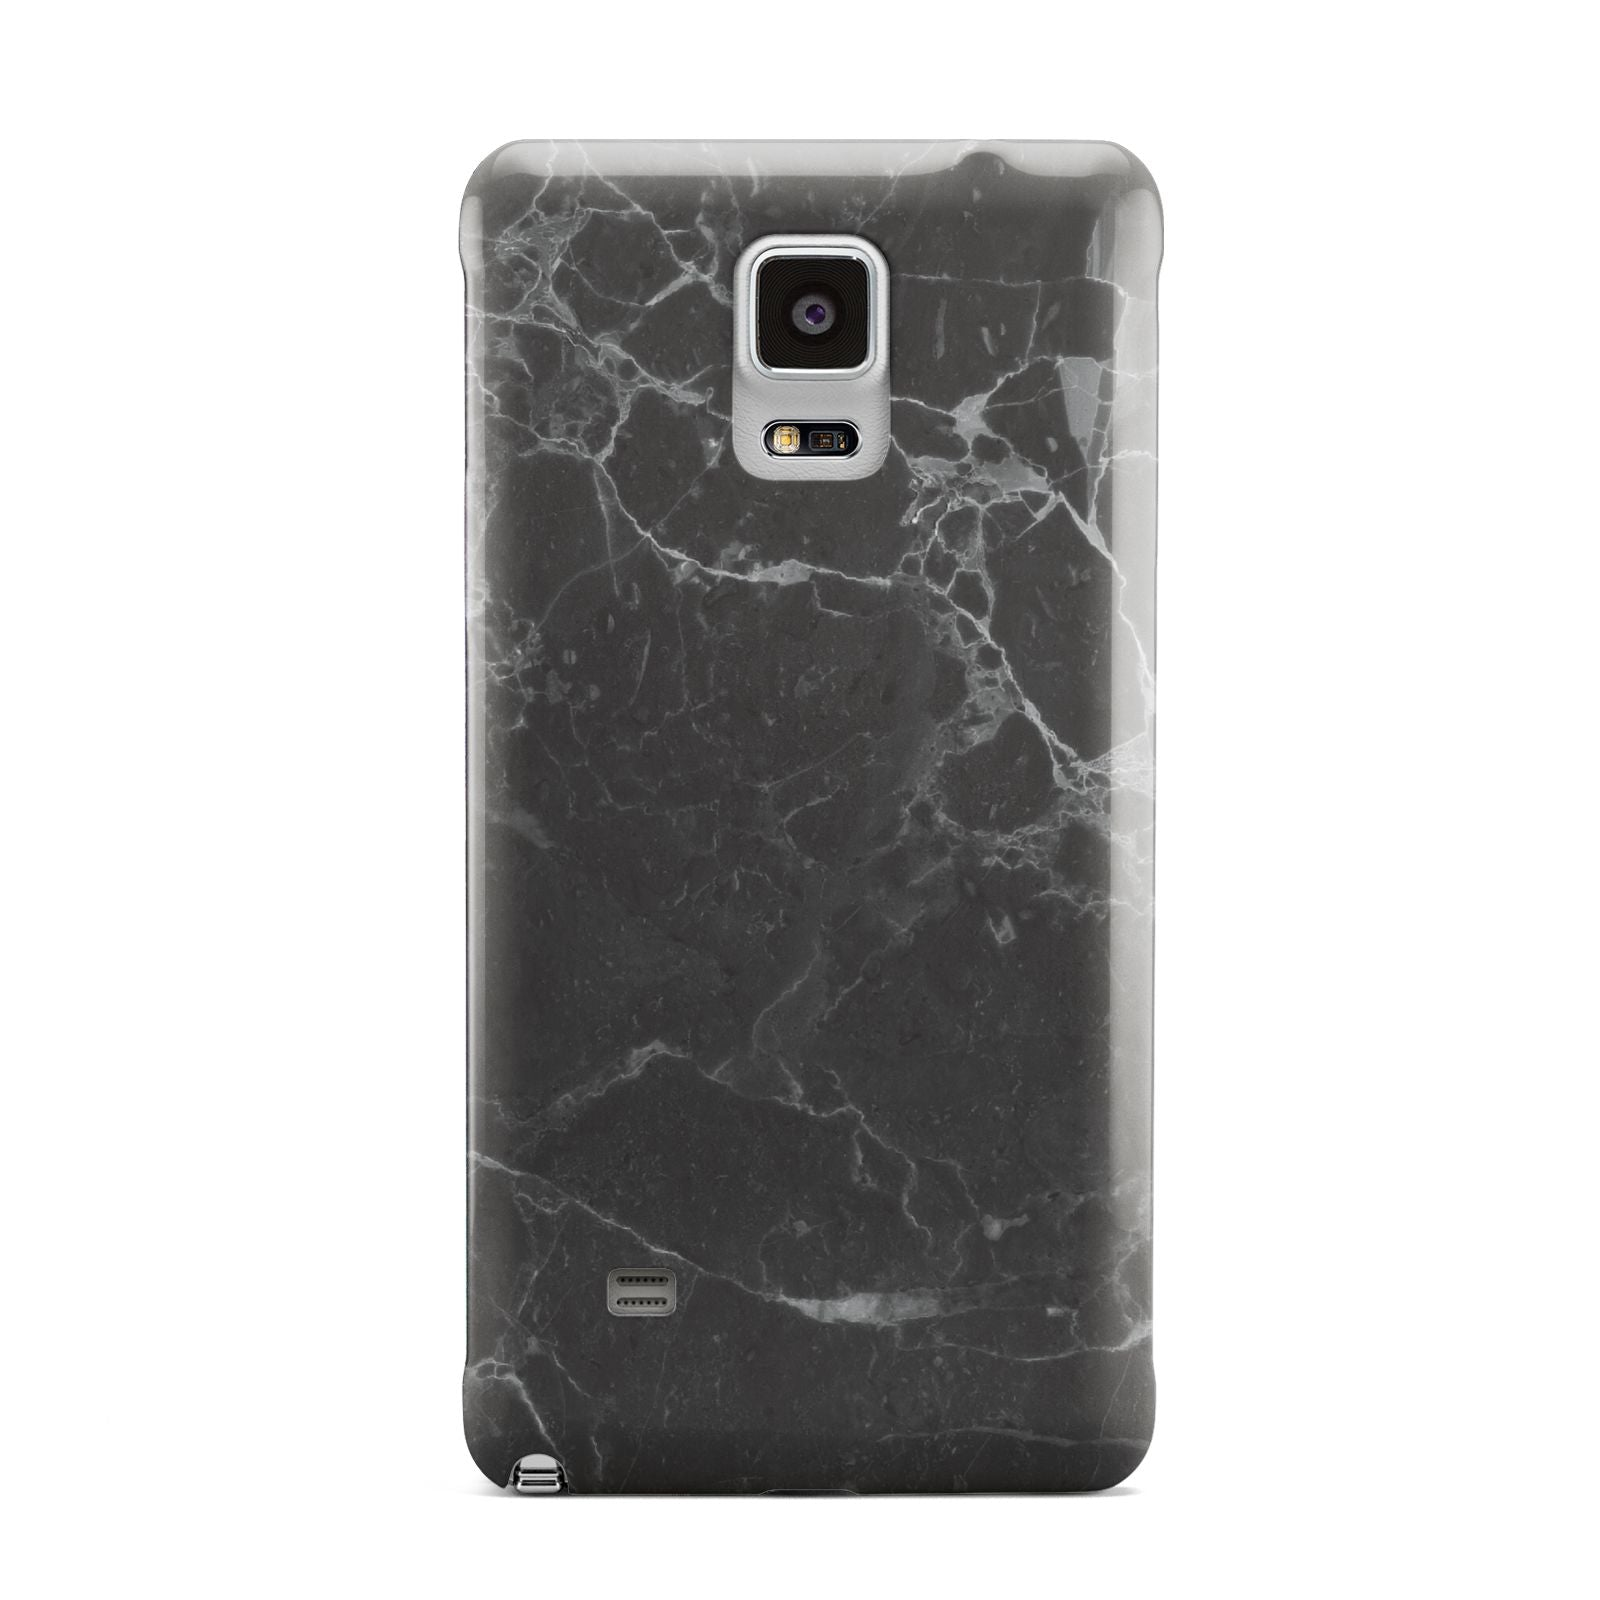 Faux Marble Effect Black Samsung Galaxy Note 4 Case